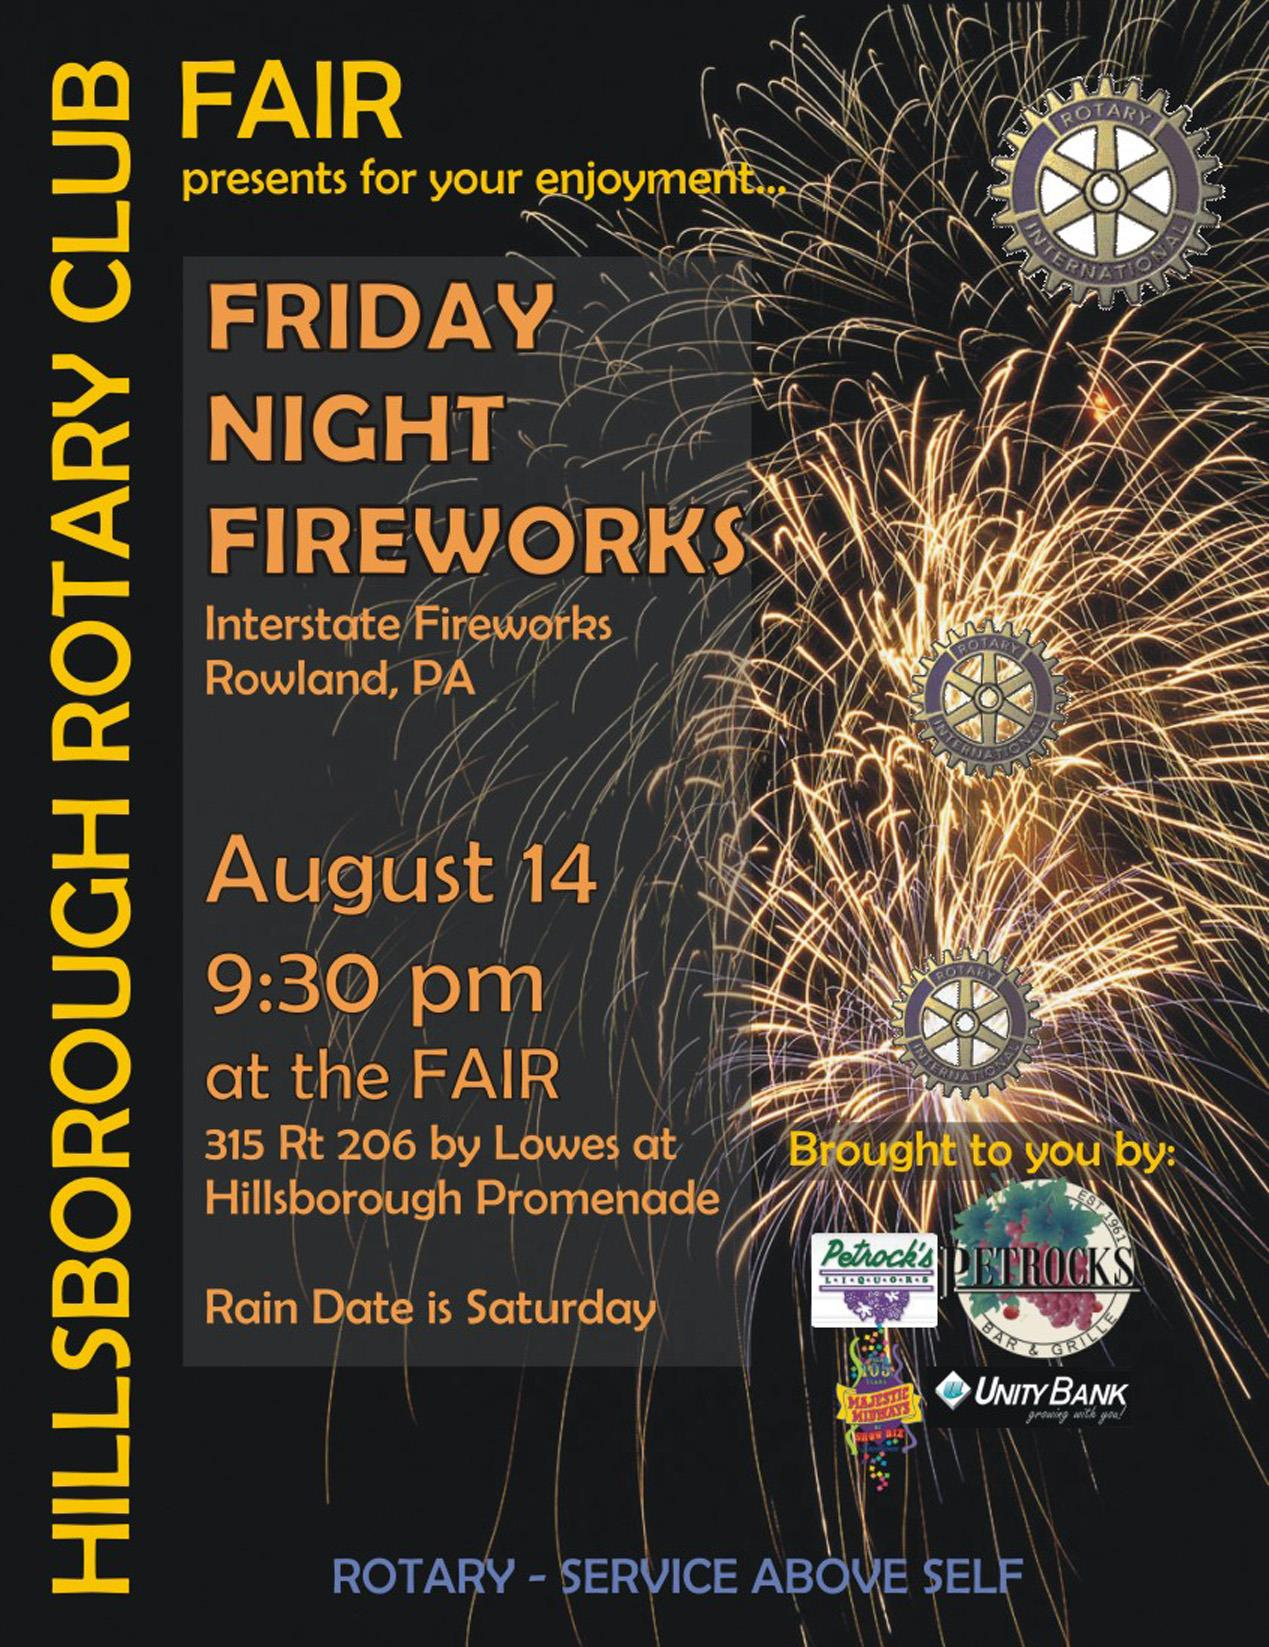 2015 Hillsboorugh Rotary Fair Fireworks Poster | Rotary Club of ...